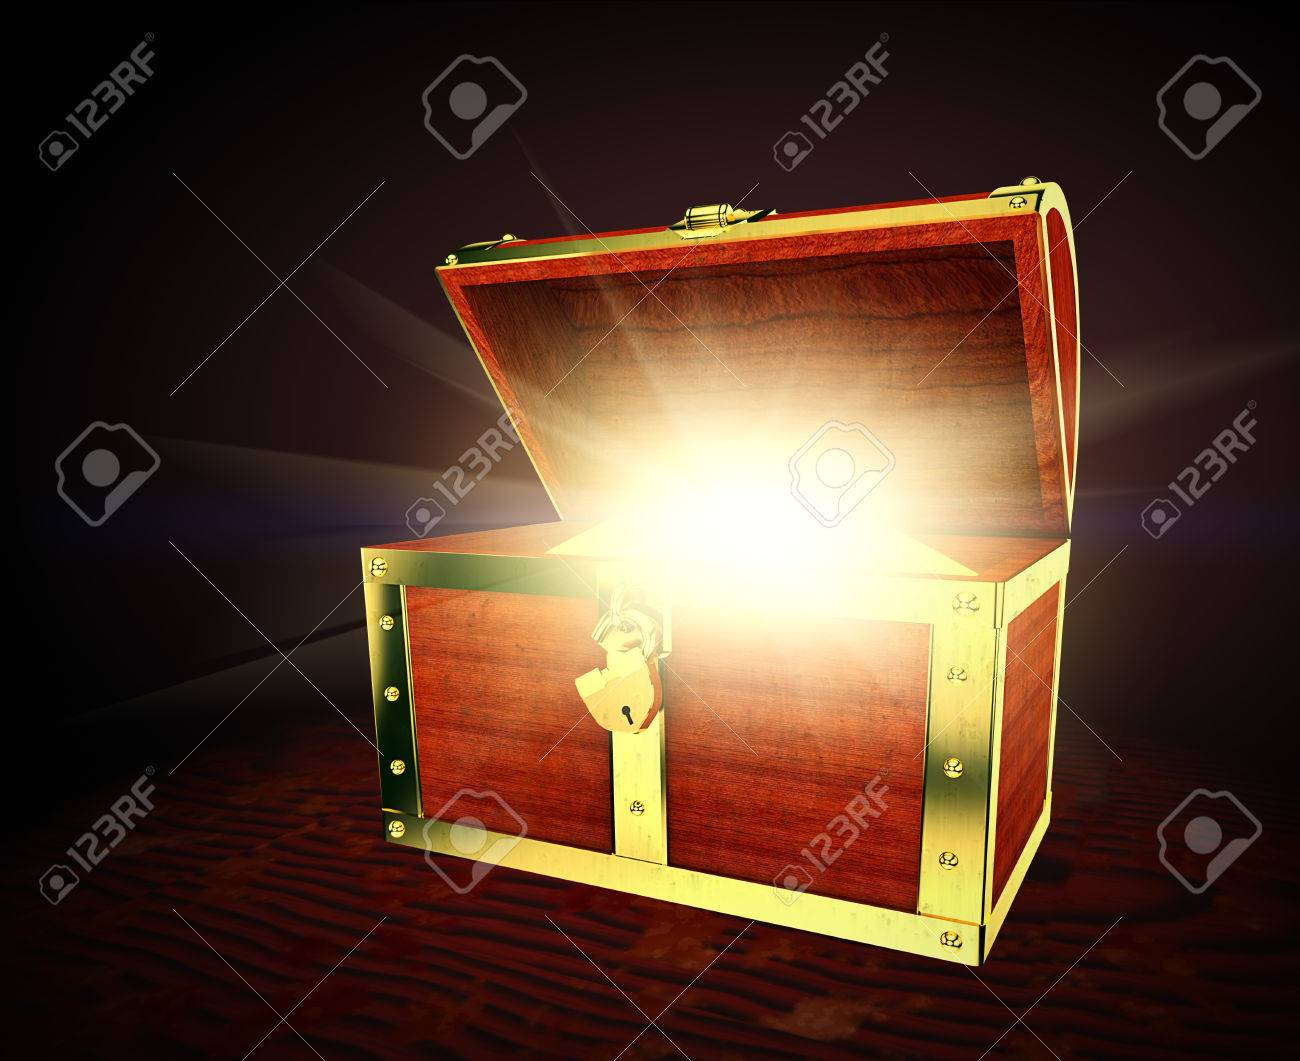 Old wooden treasure chest with strong glow from inside - 35532205